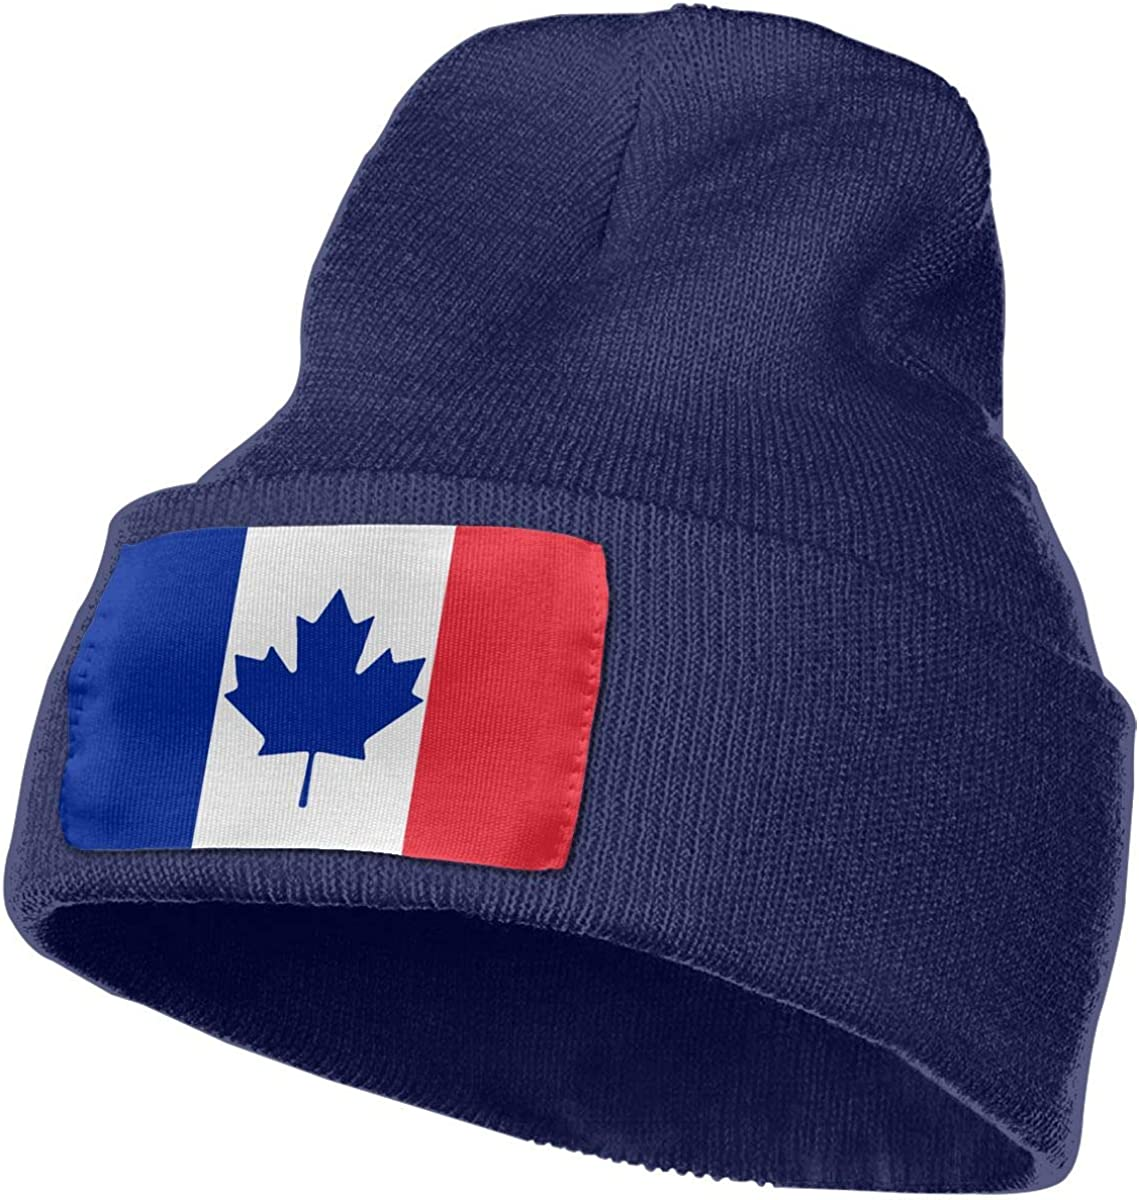 TAOMAP89 Canada France Flag Mashup Women and Men Skull Caps Winter Warm Stretchy Knit Beanie Hats